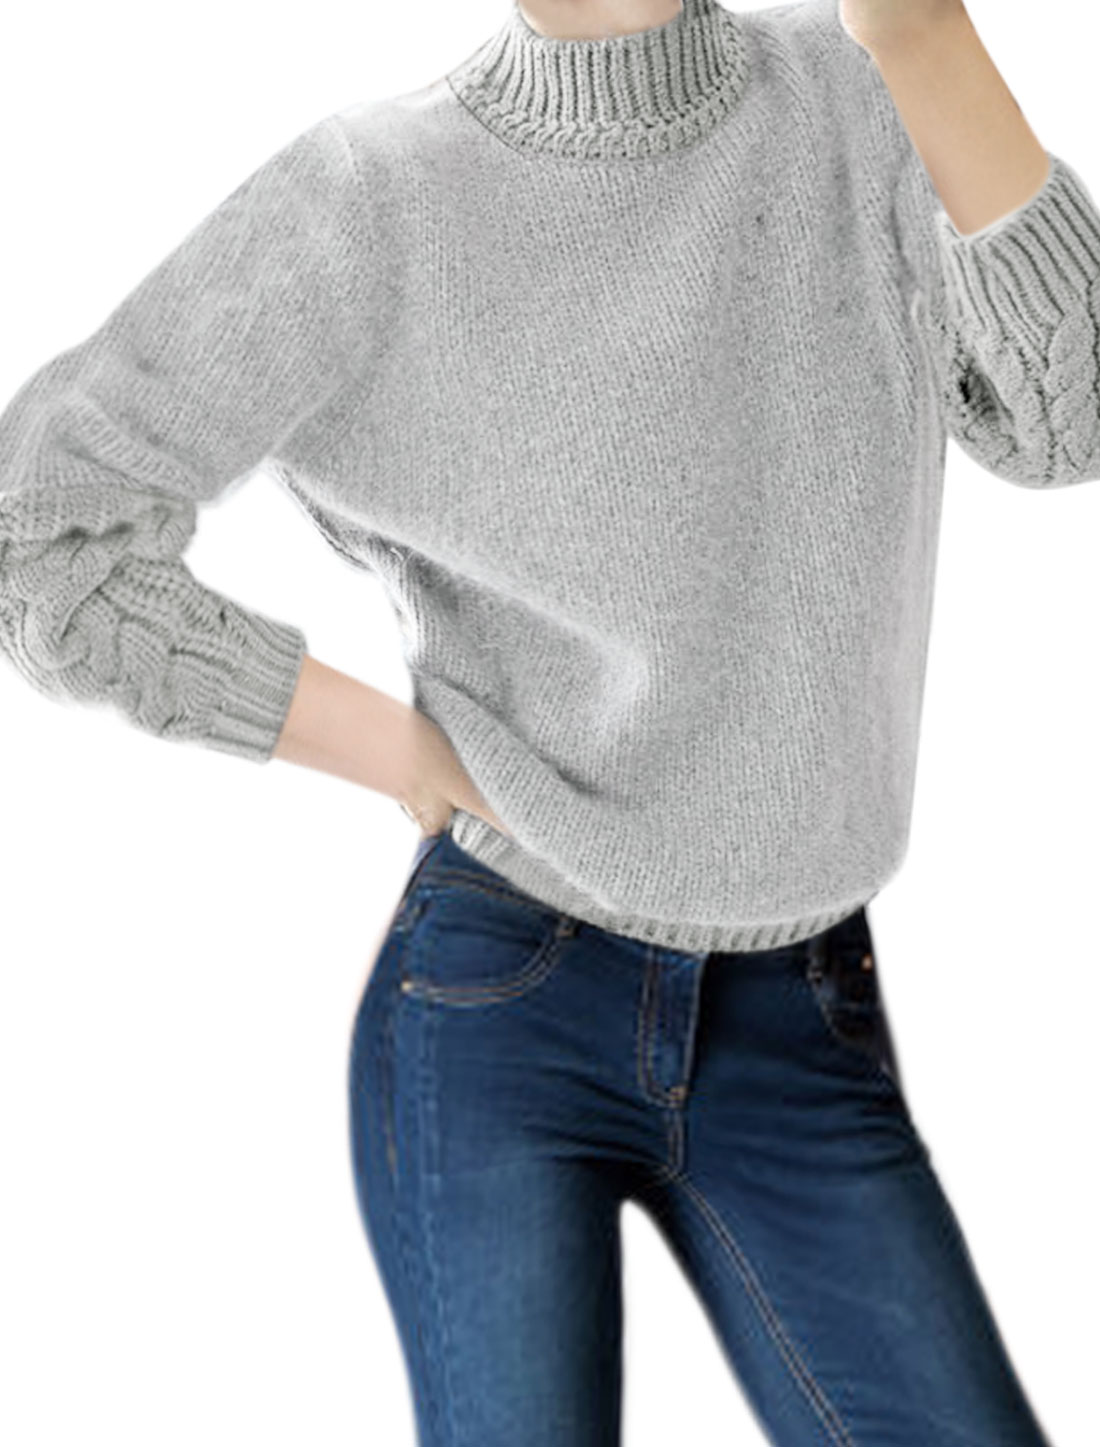 Ladies Mock Neck Cable Knit Design Plush Sweater Gray XS